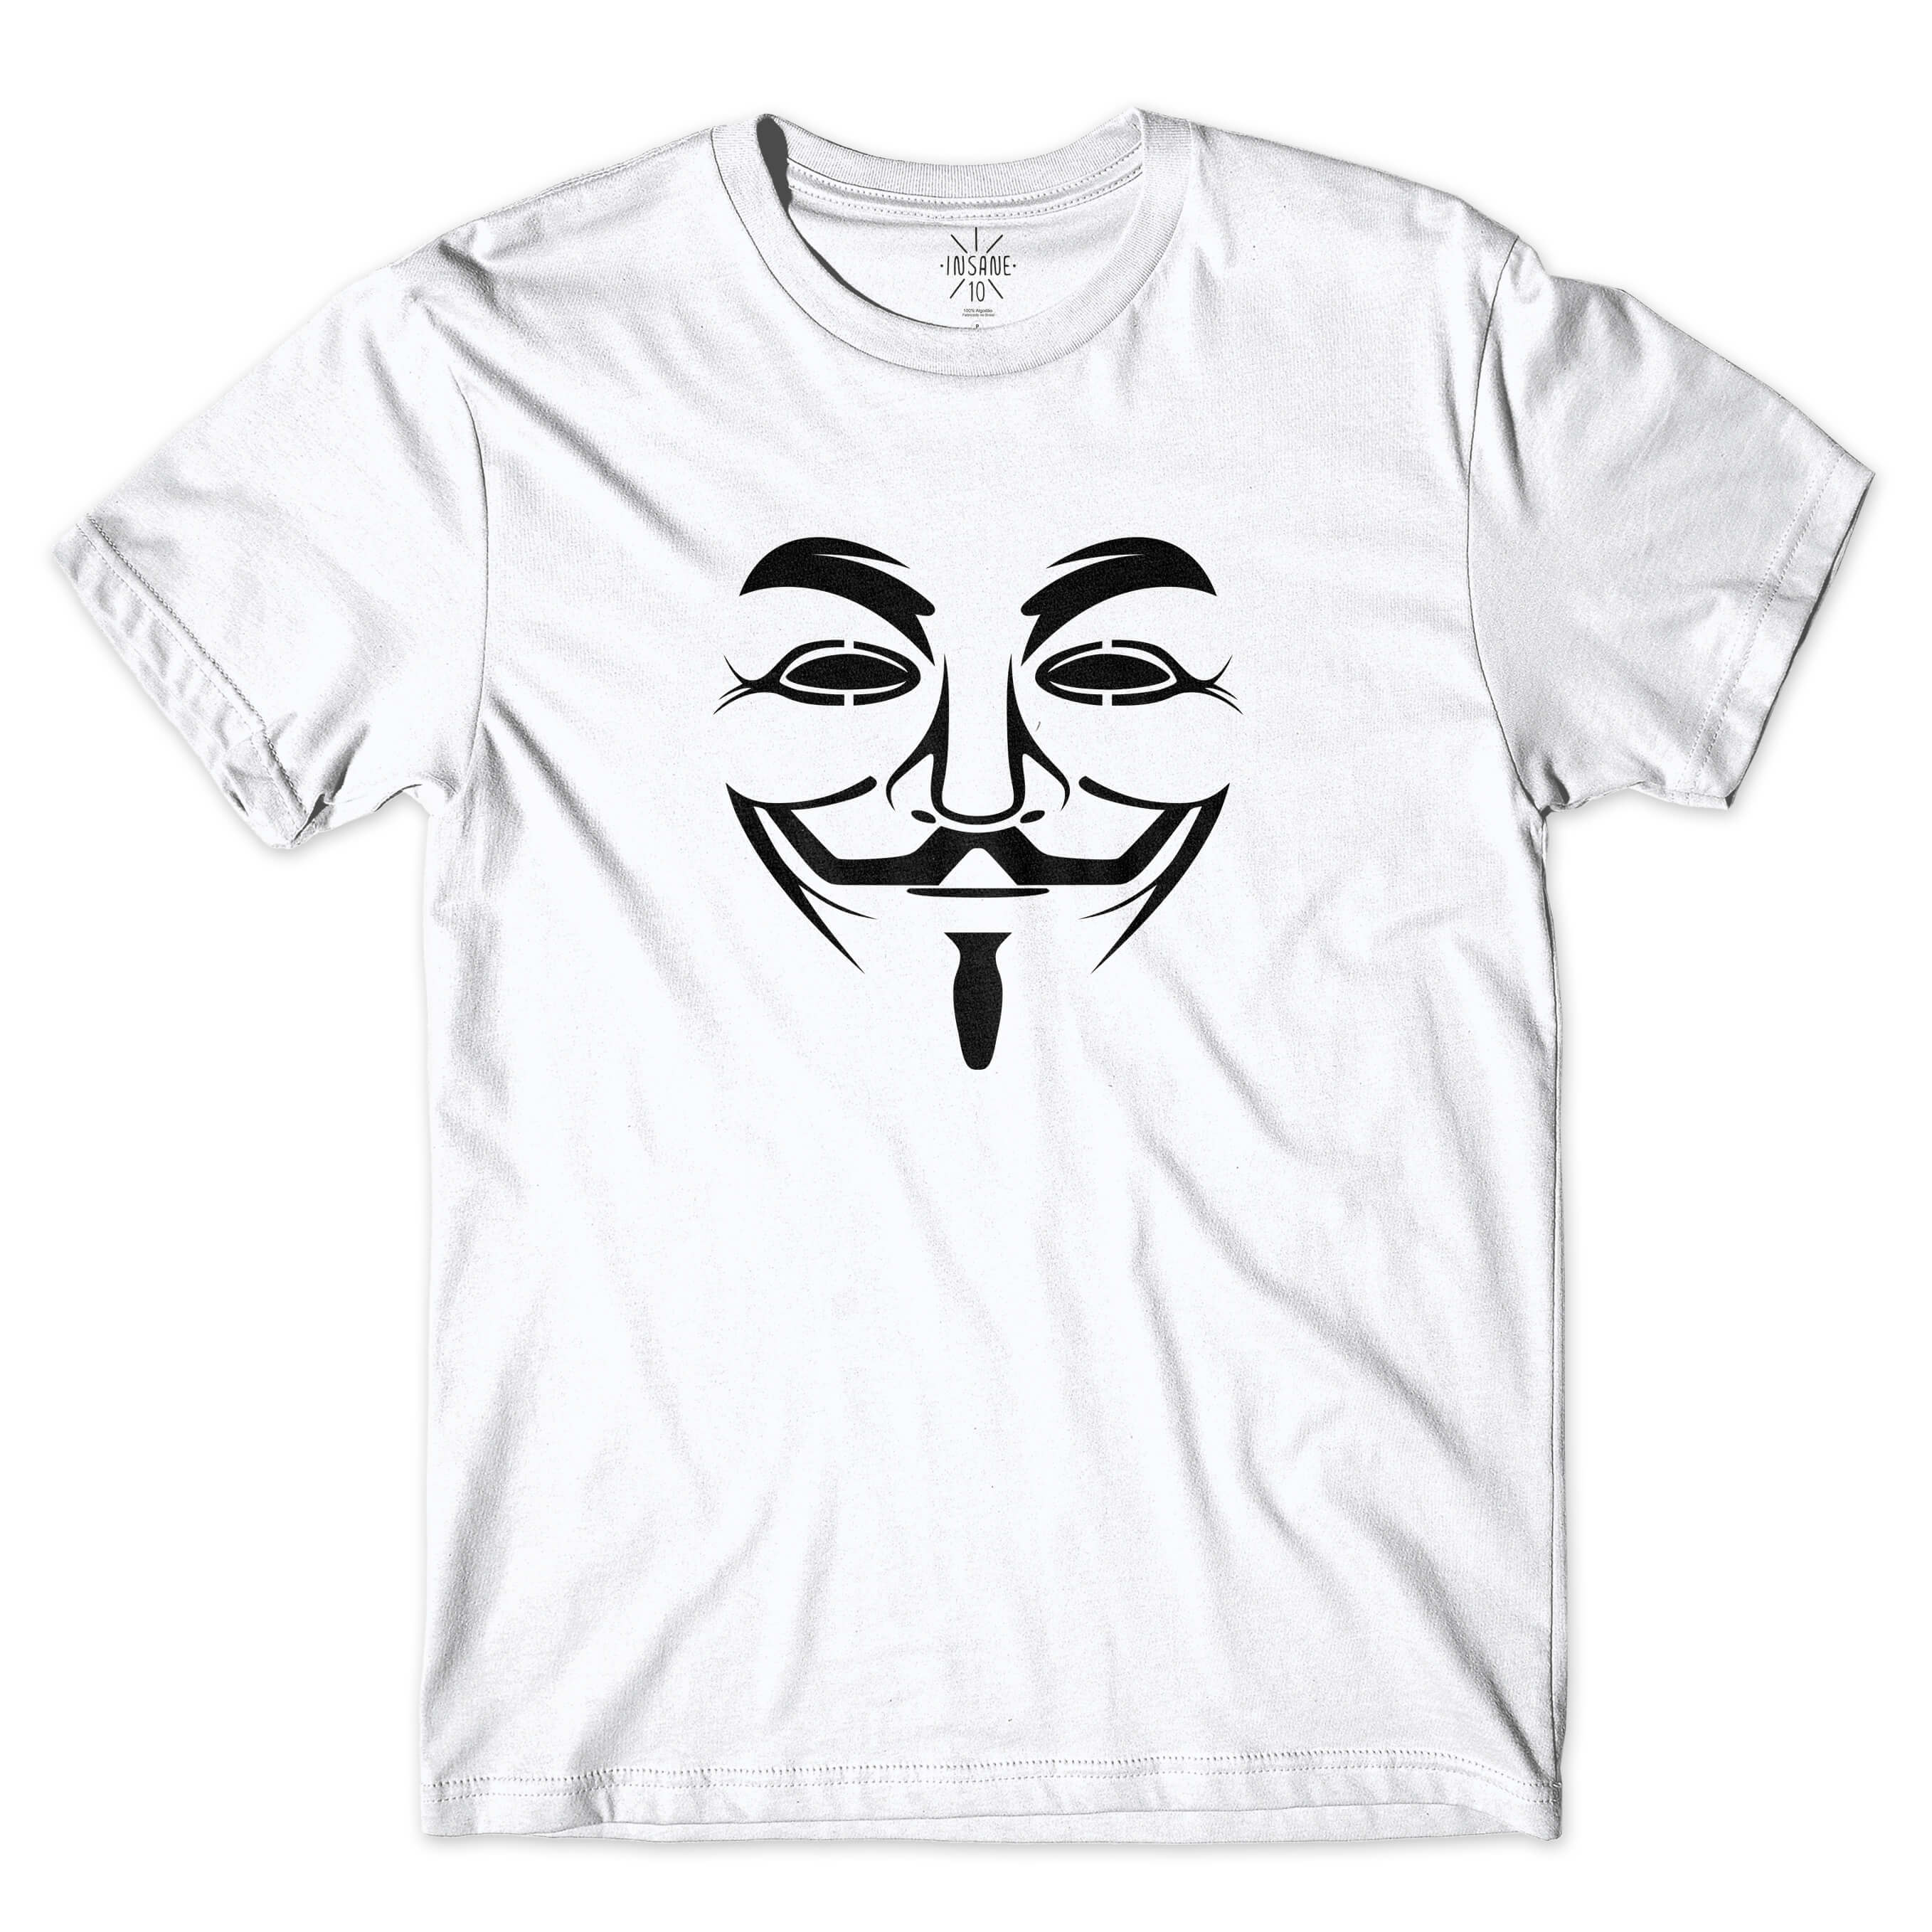 Camiseta Insane 10 Hacker Máscara Guy Fawkes Branco